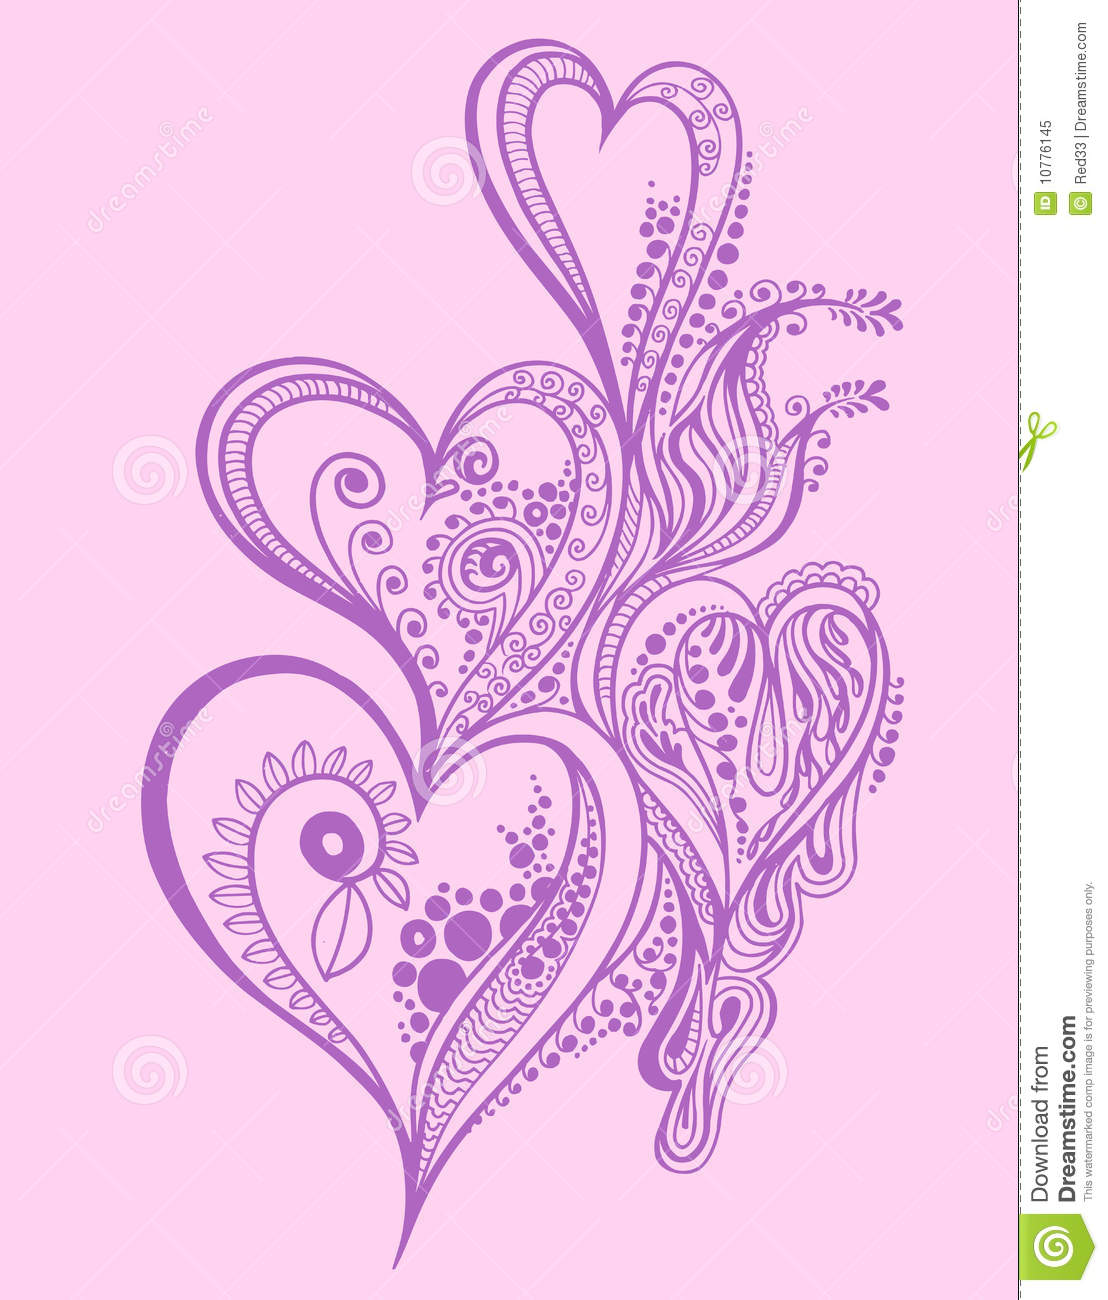 Heart Henna Tattoos: Henna Doodle Heart Design Stock Vector. Illustration Of